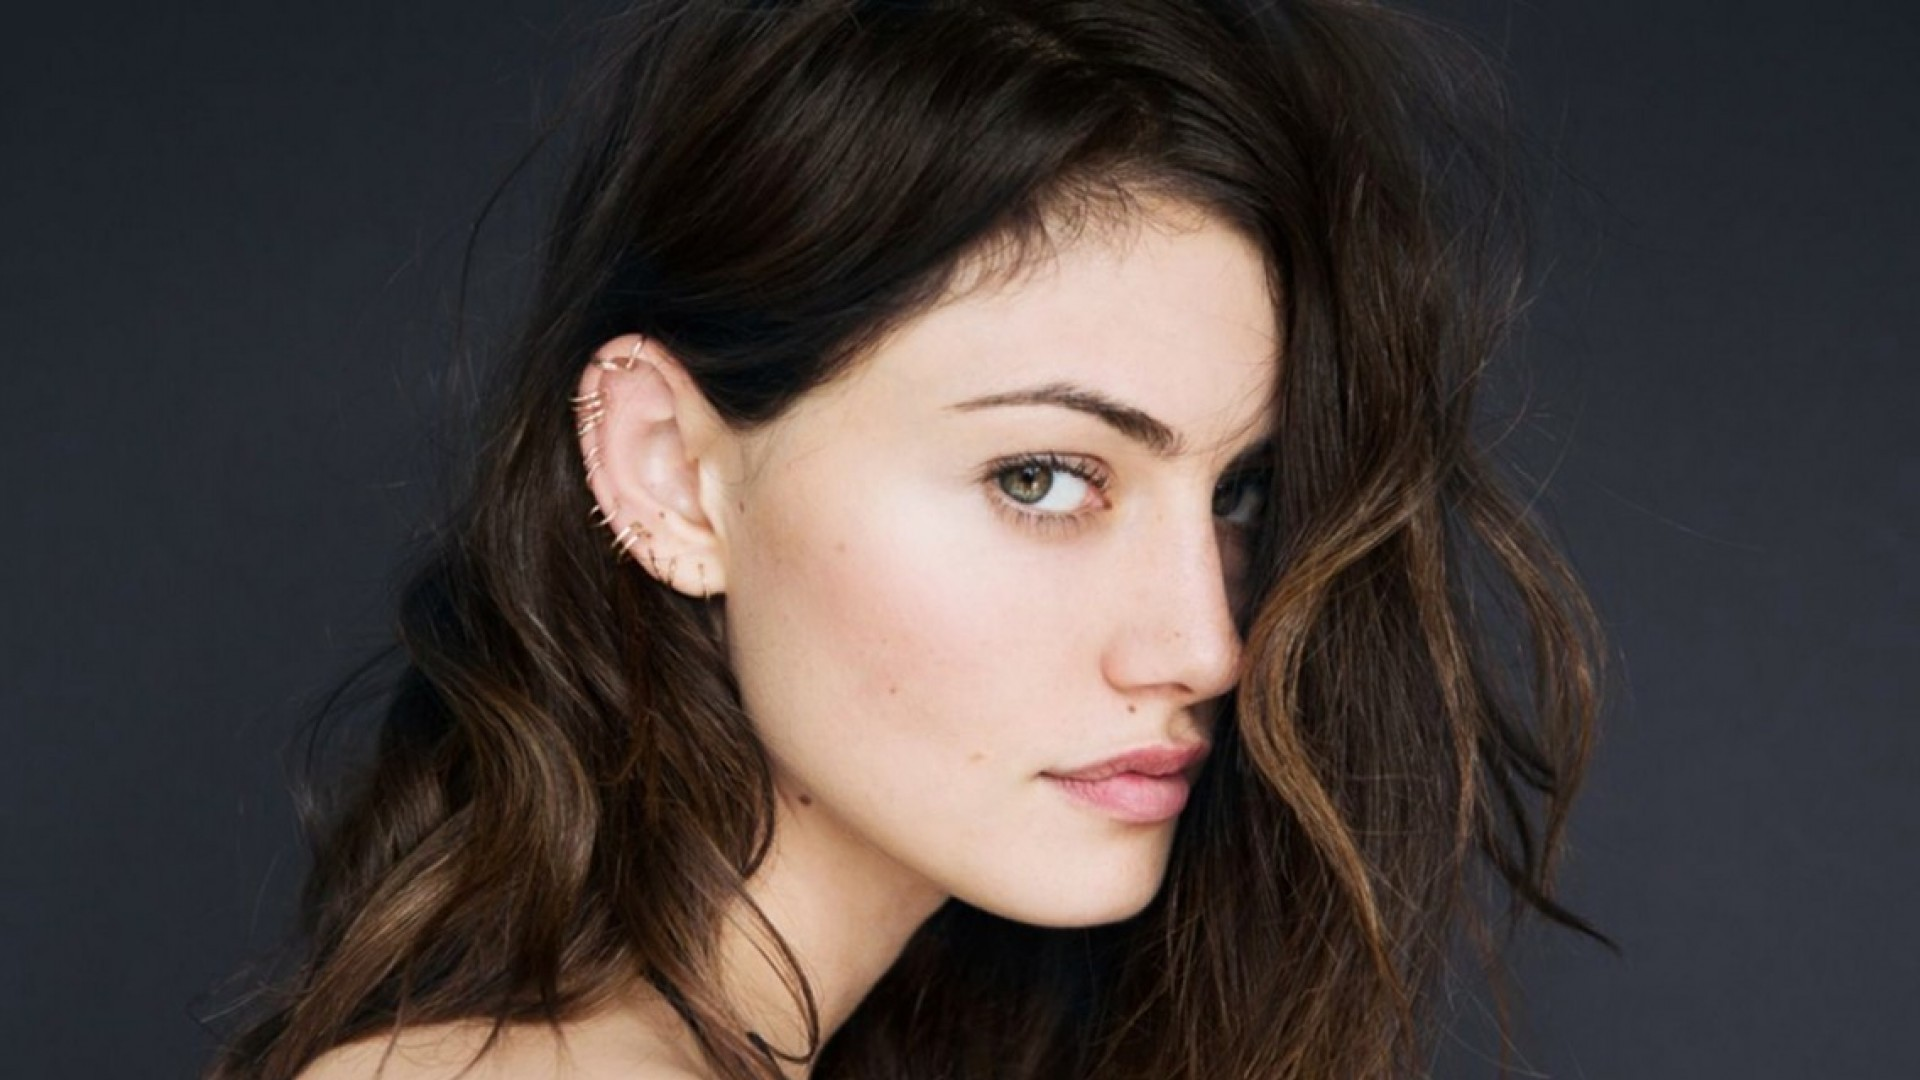 Daily Phoebe Tonkin Wallpapers Hq